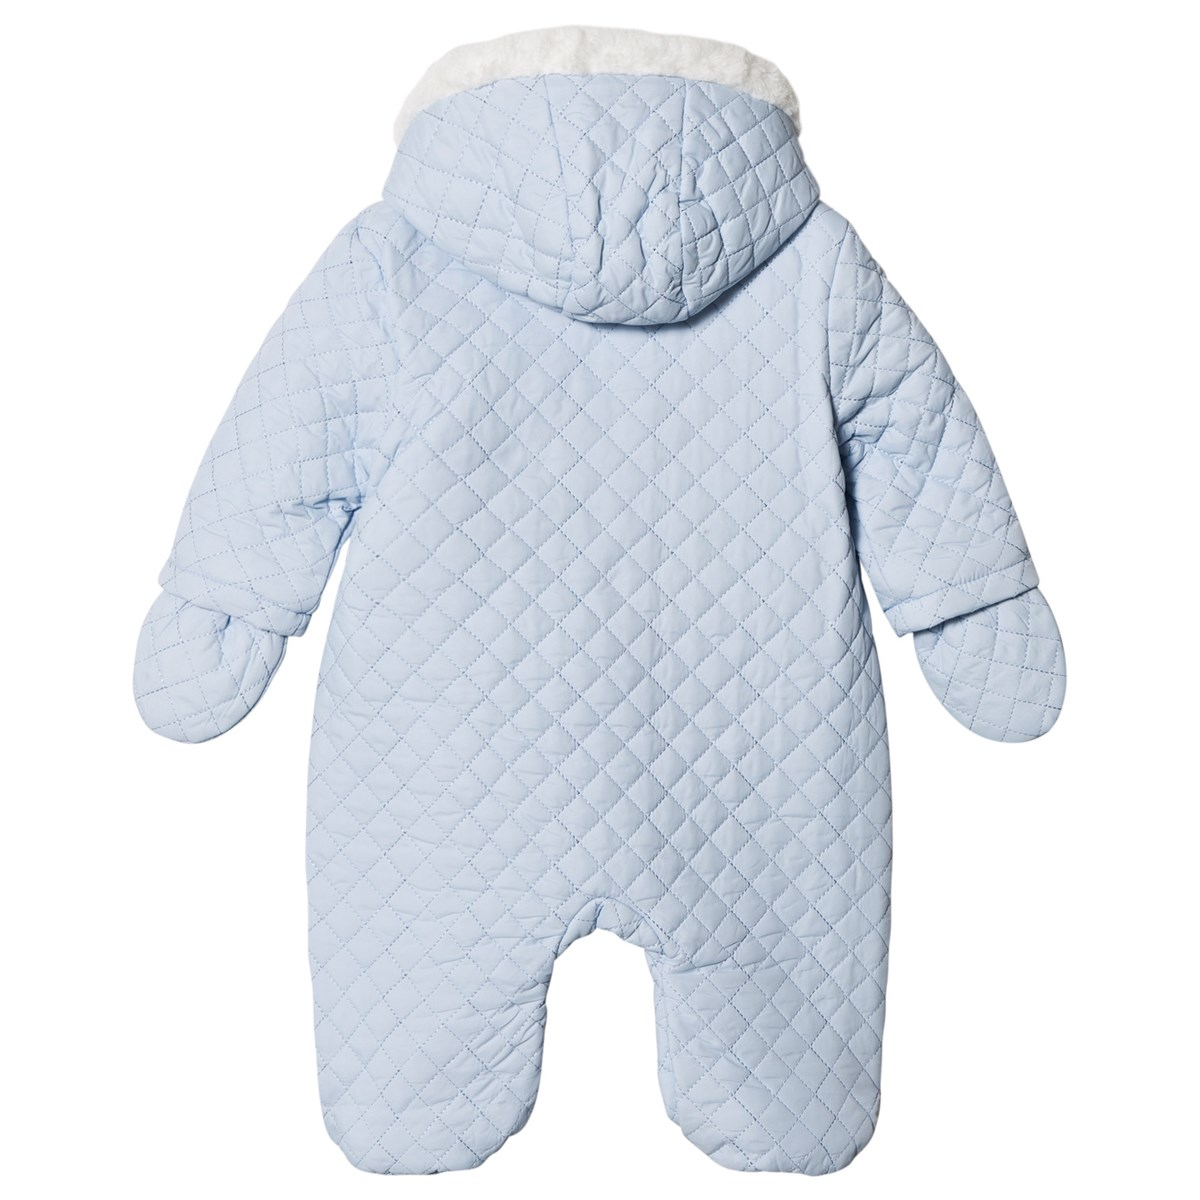 7c84f35917f9 Mintini Baby Blue Quilted Pramsuit with Faux Fur Trim Collar ...